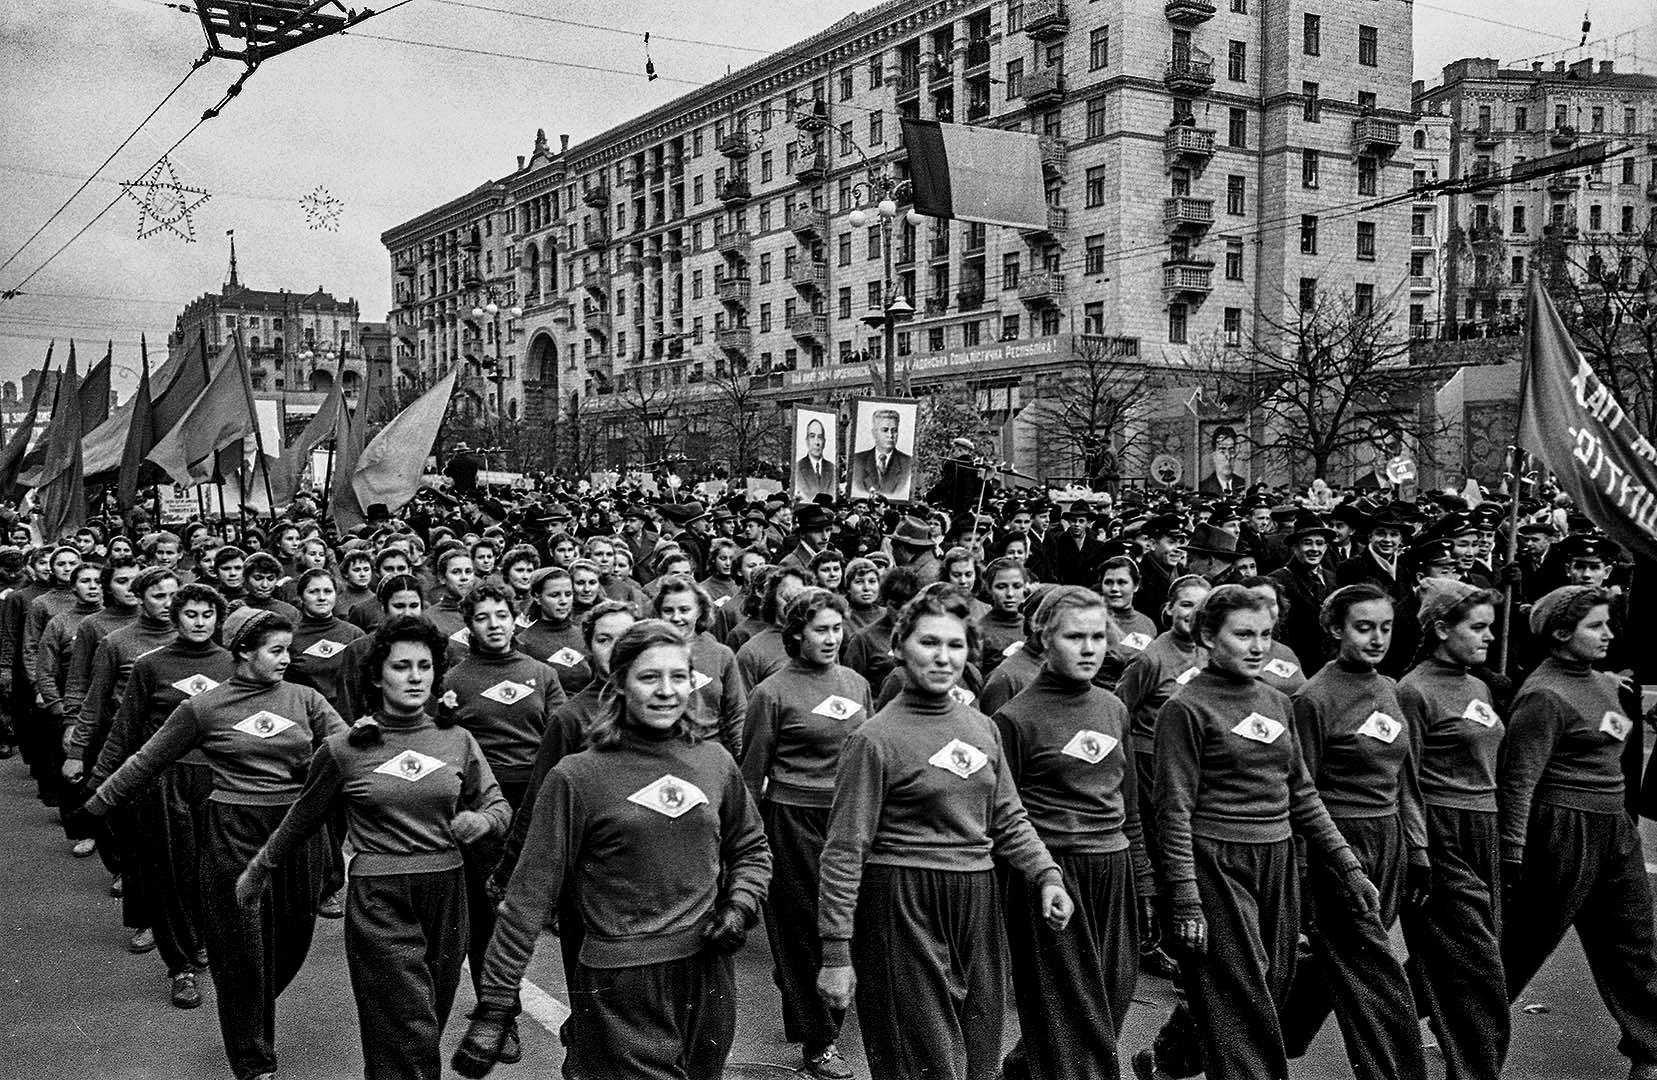 1958, Khreshchatyk, 41th anniversary of the October revolution by Iryna Pap - SEE KYIV